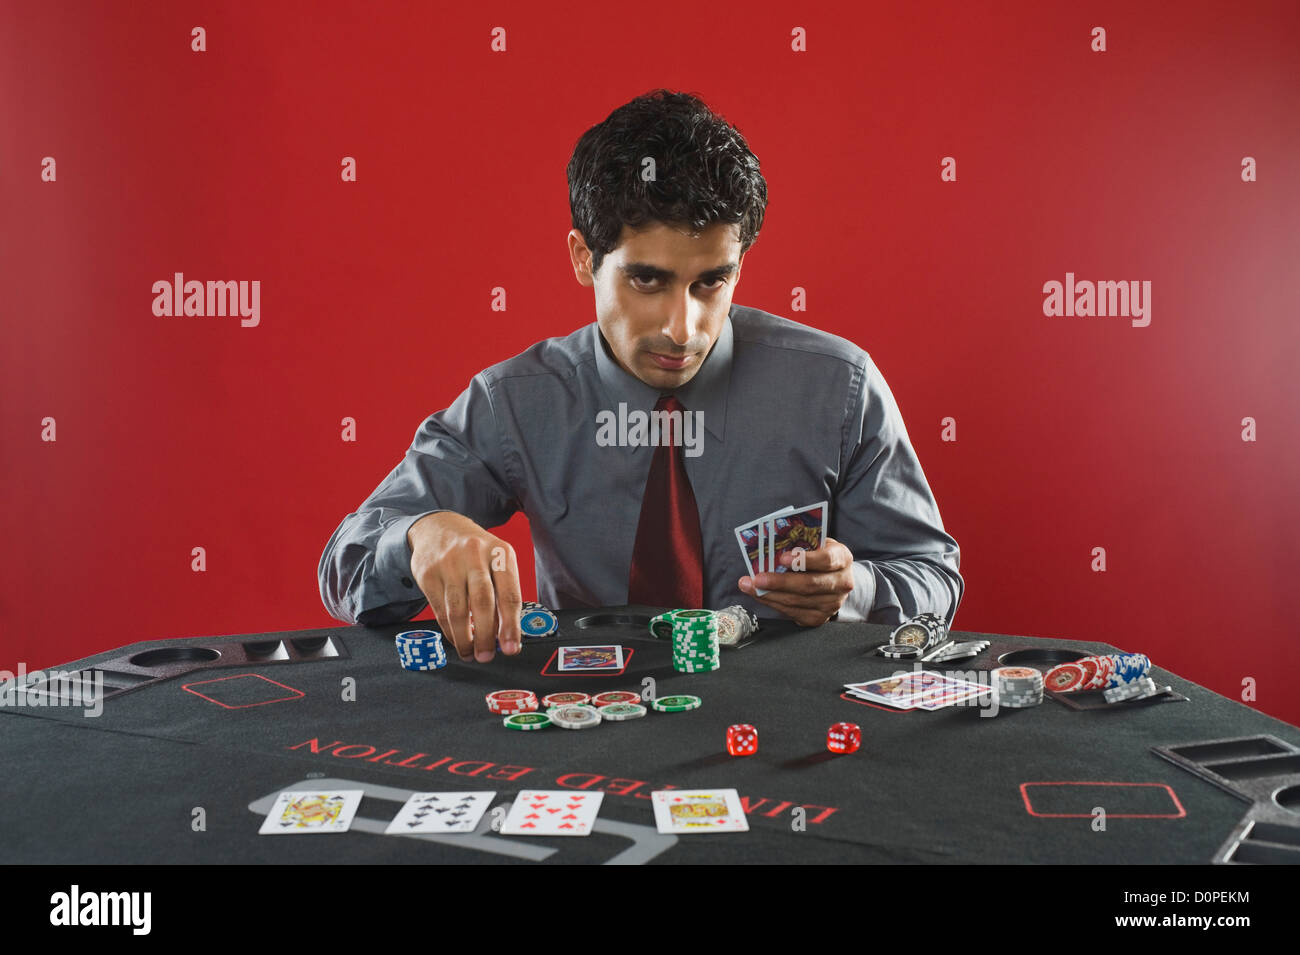 Portrait of a man gambling in a casino - Stock Image